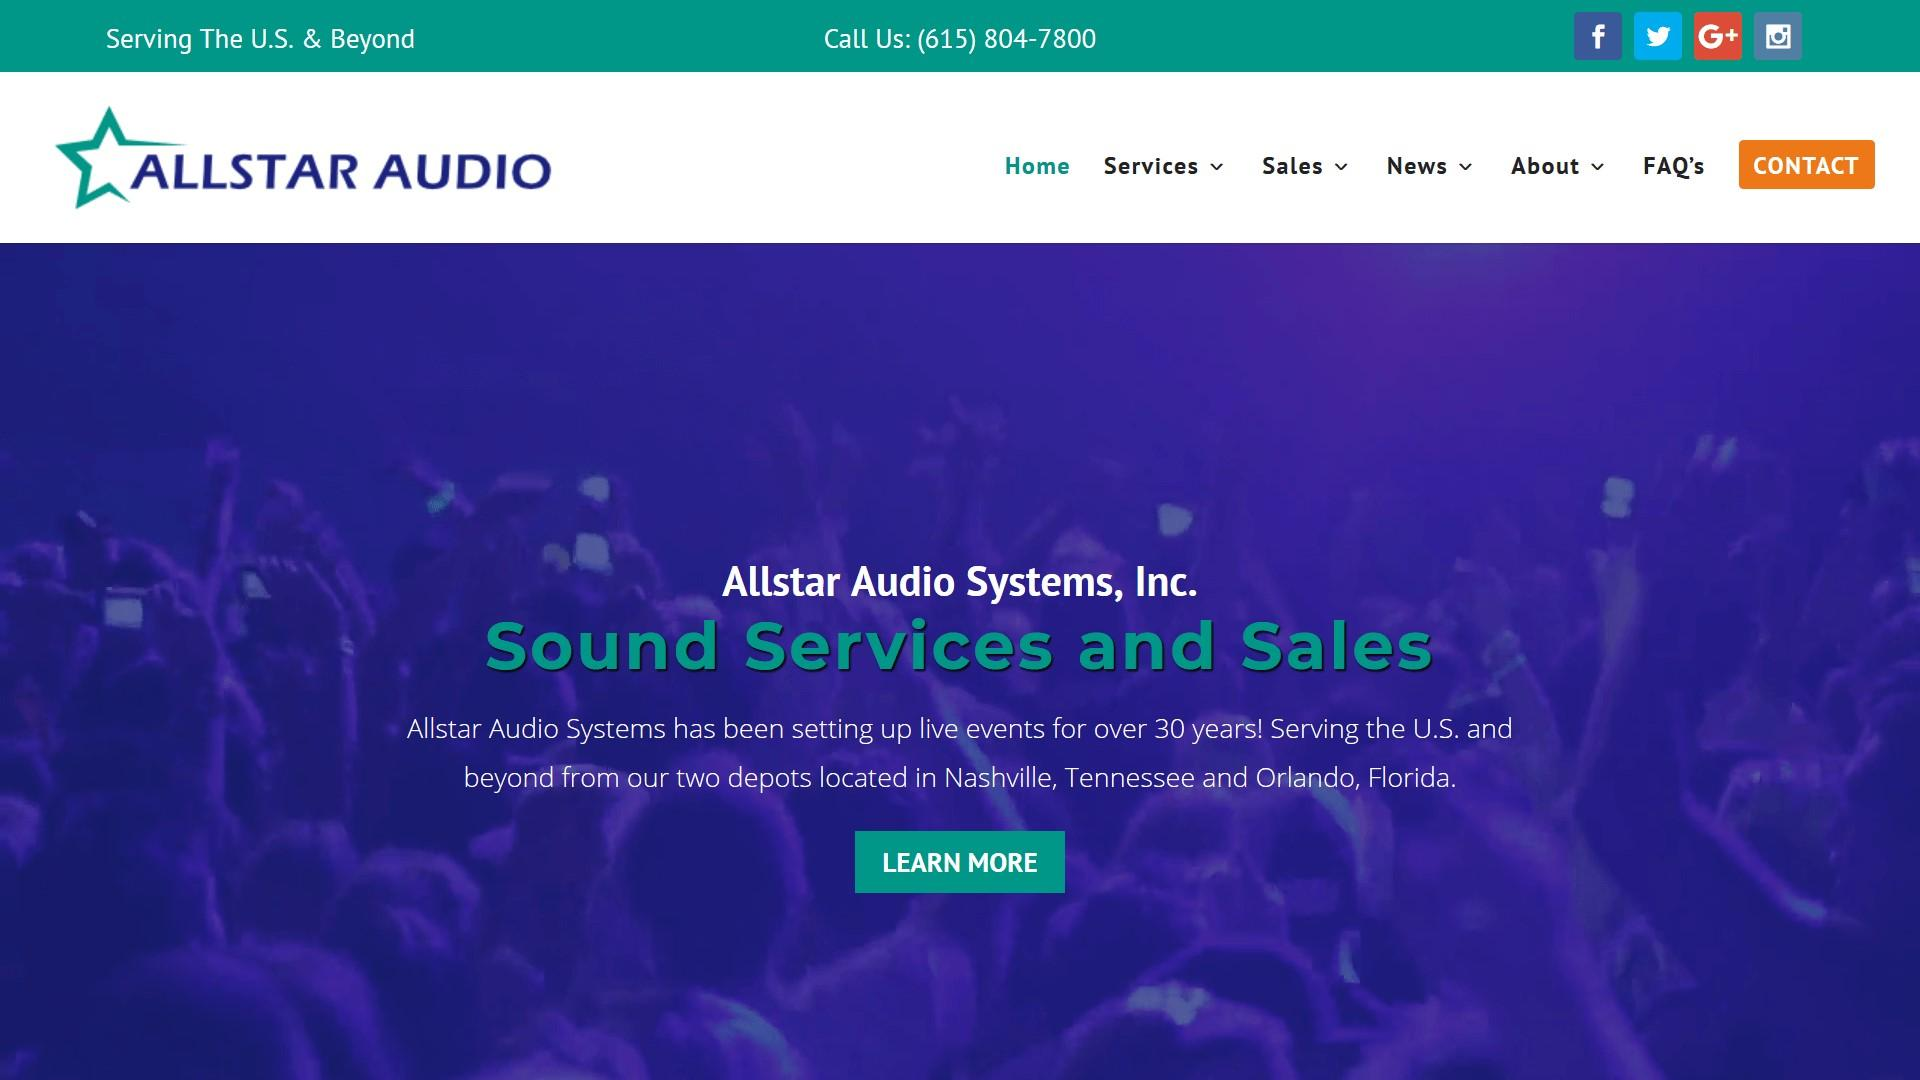 Allstar Audio WordPress Website Redesign Project